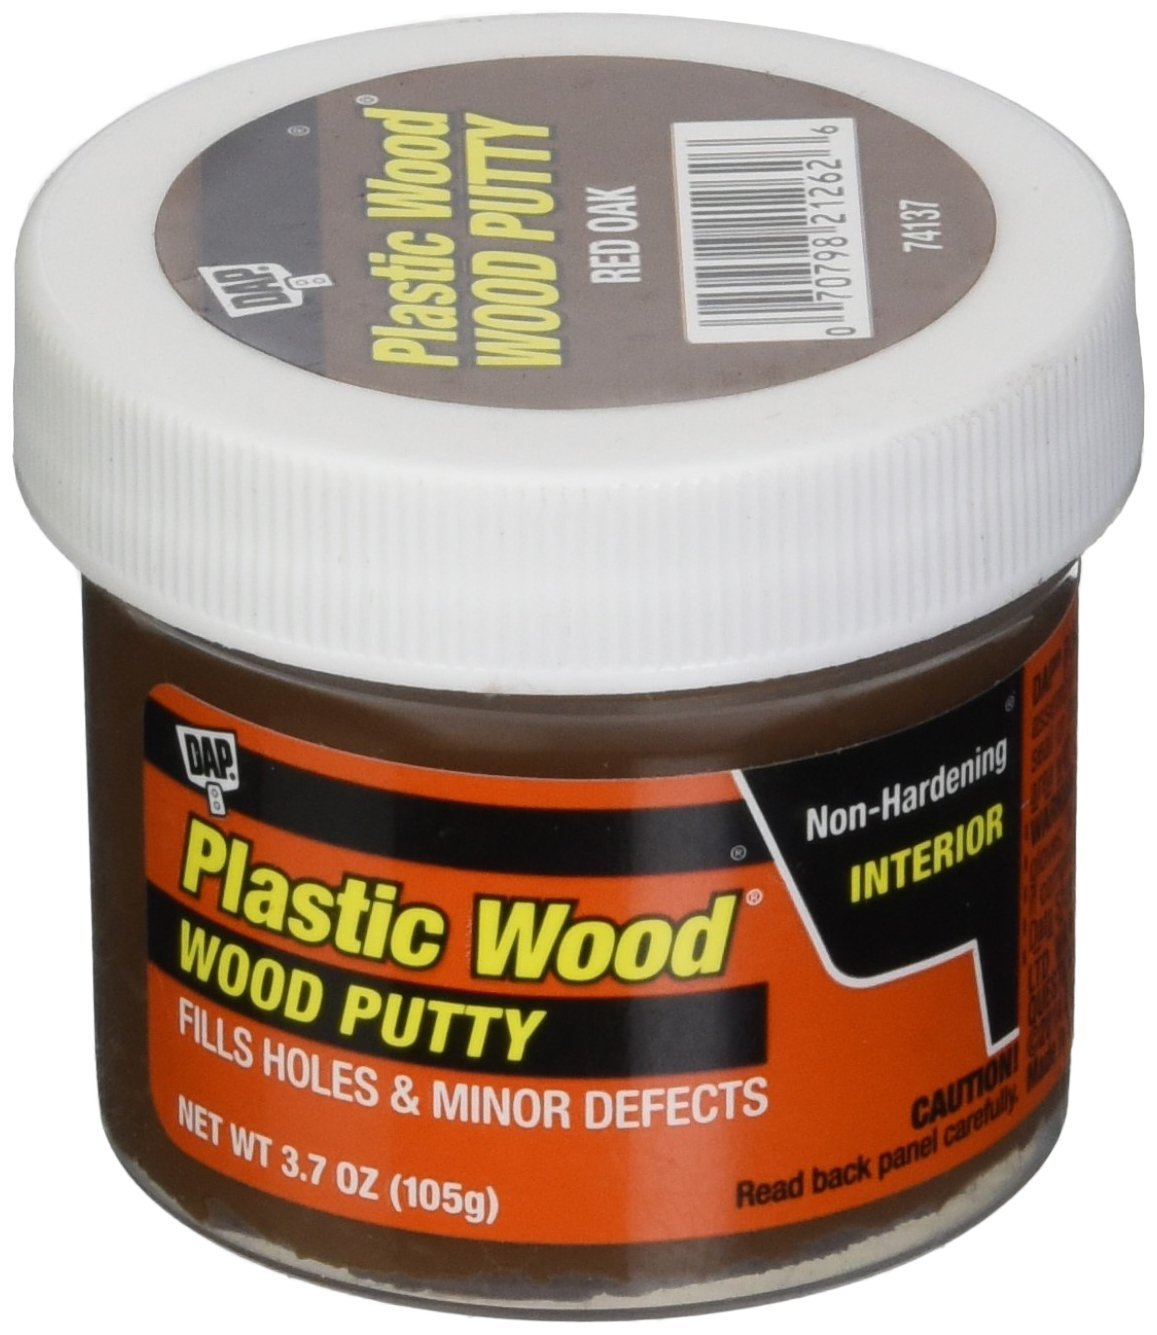 Dap 7079821262 Finishing Putty Red Oak 3.7 Oz Raw Building Material